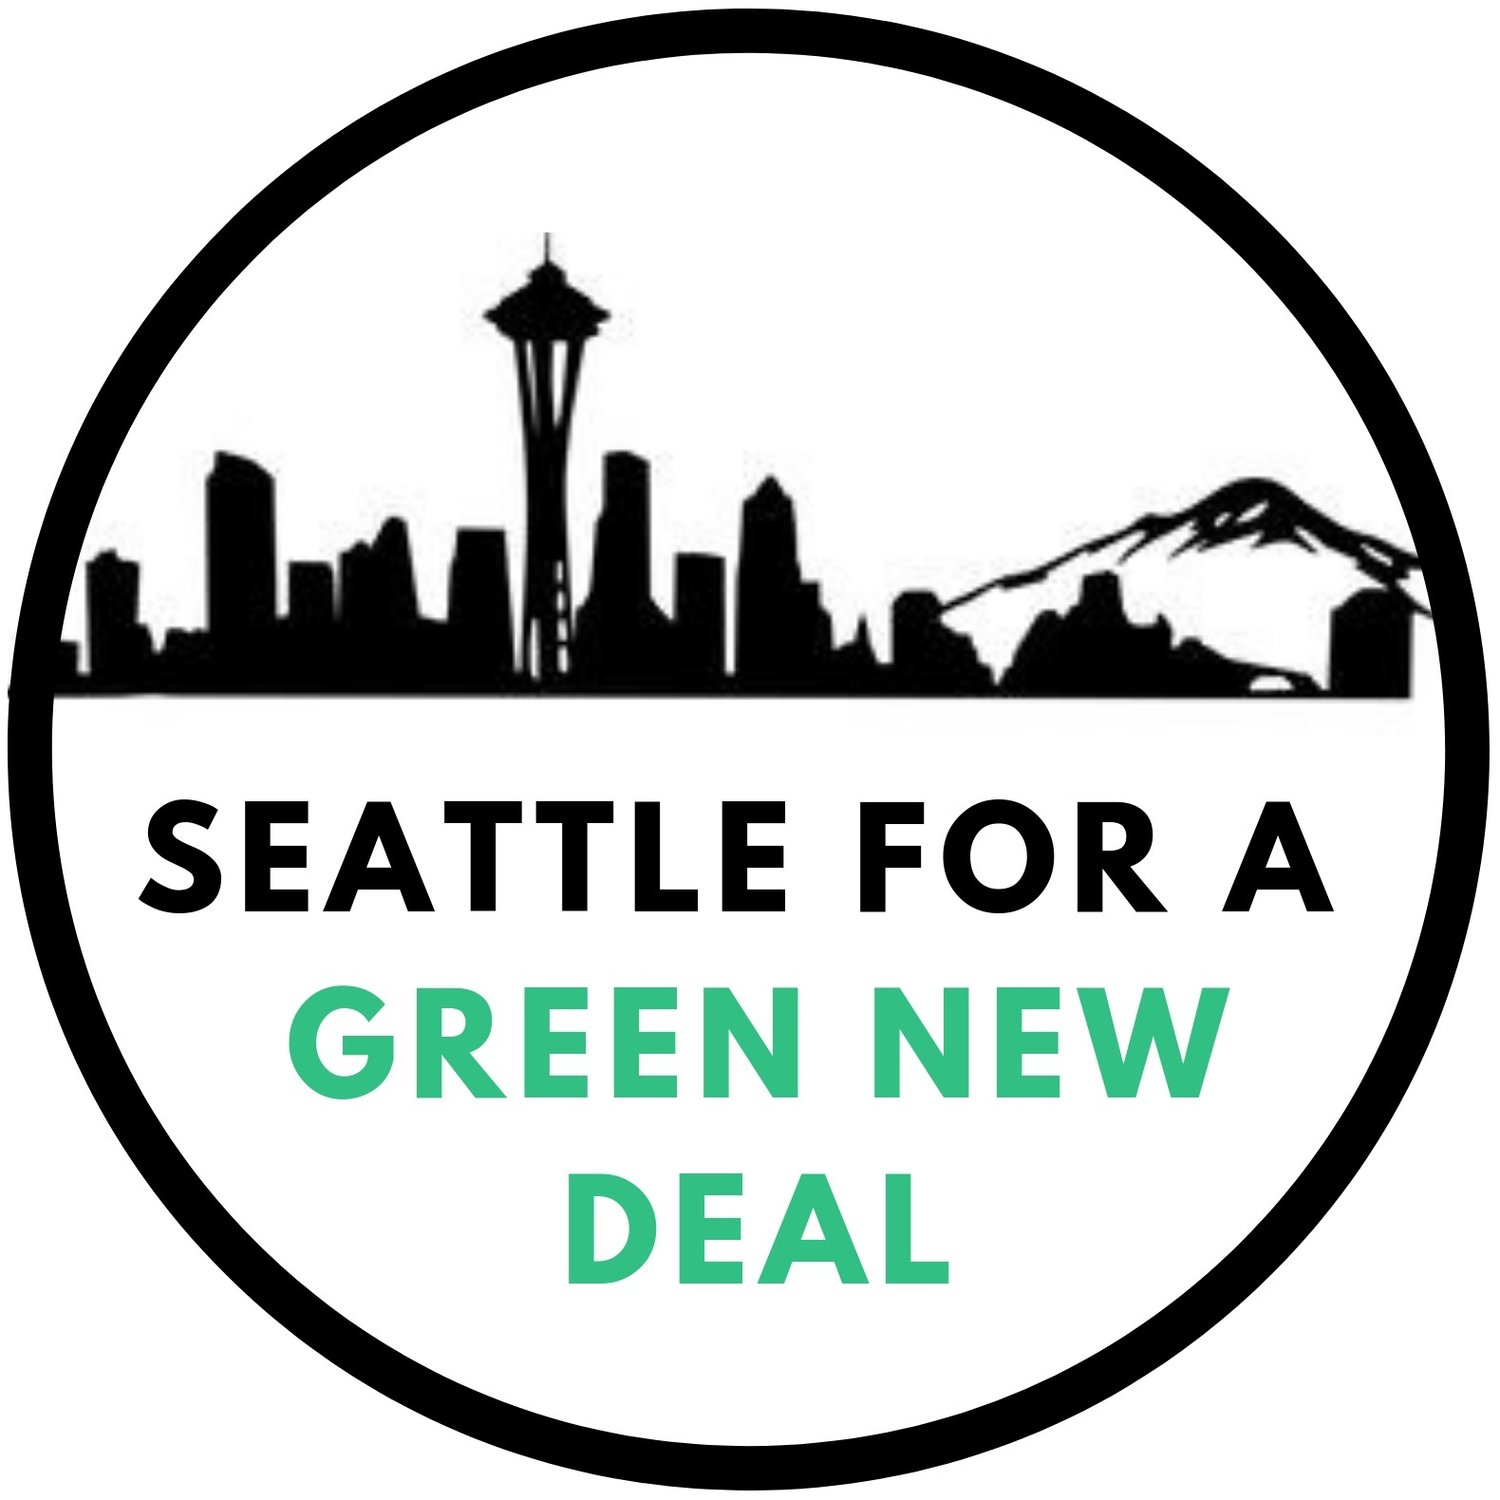 Seattle For A Green New Deal